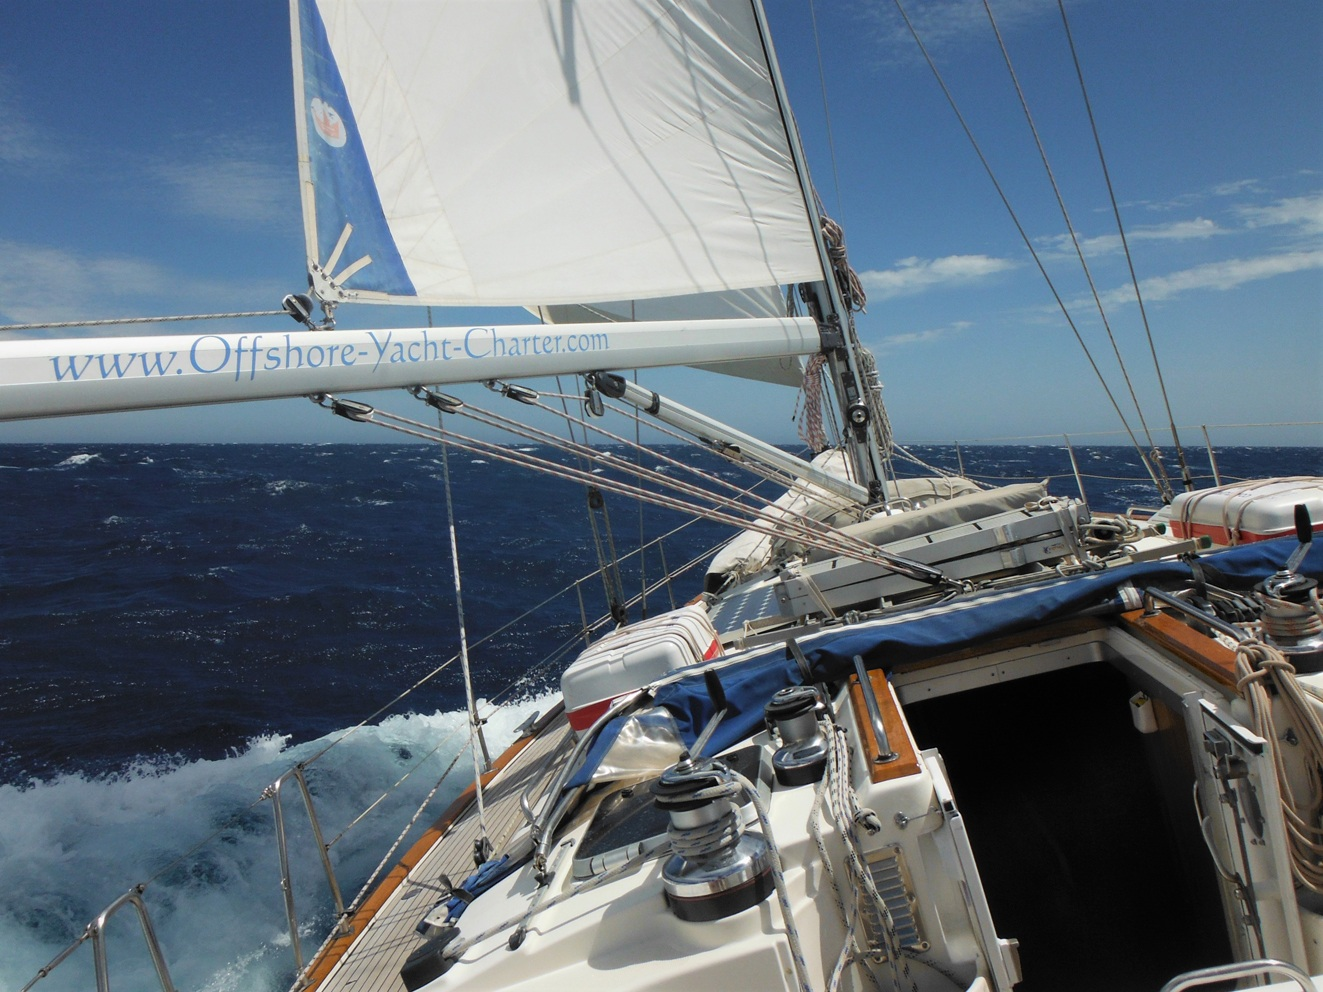 Offshore sail training